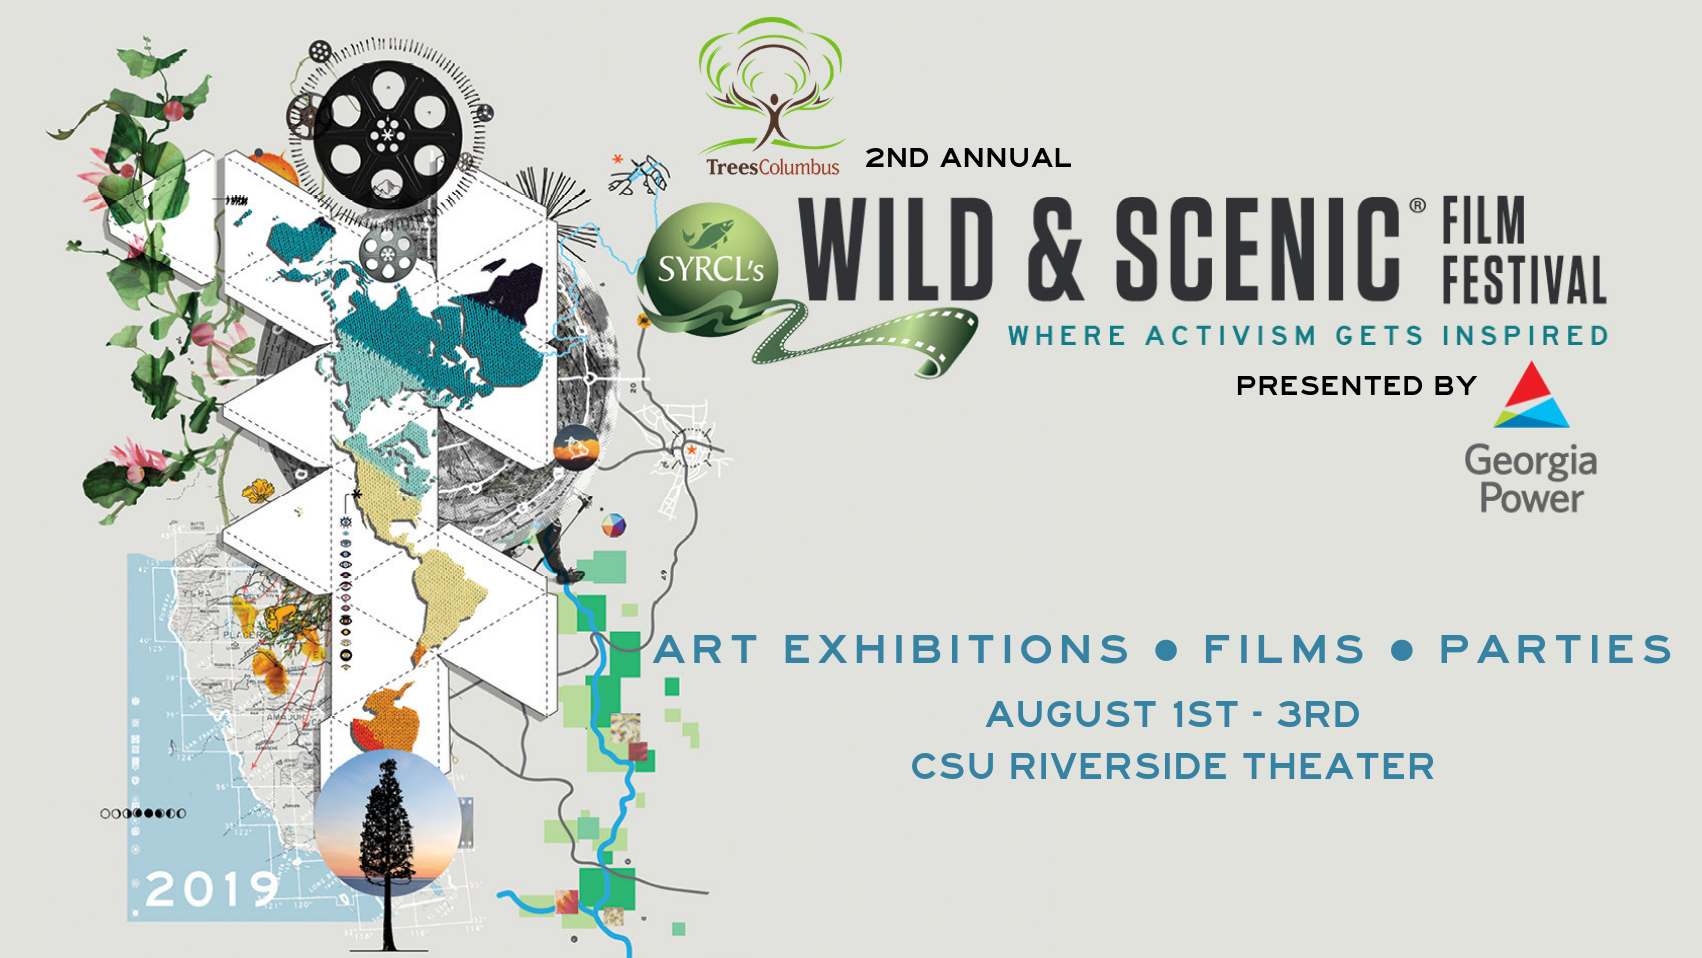 Wild & Scenic Film Festival presented by Georgia Power